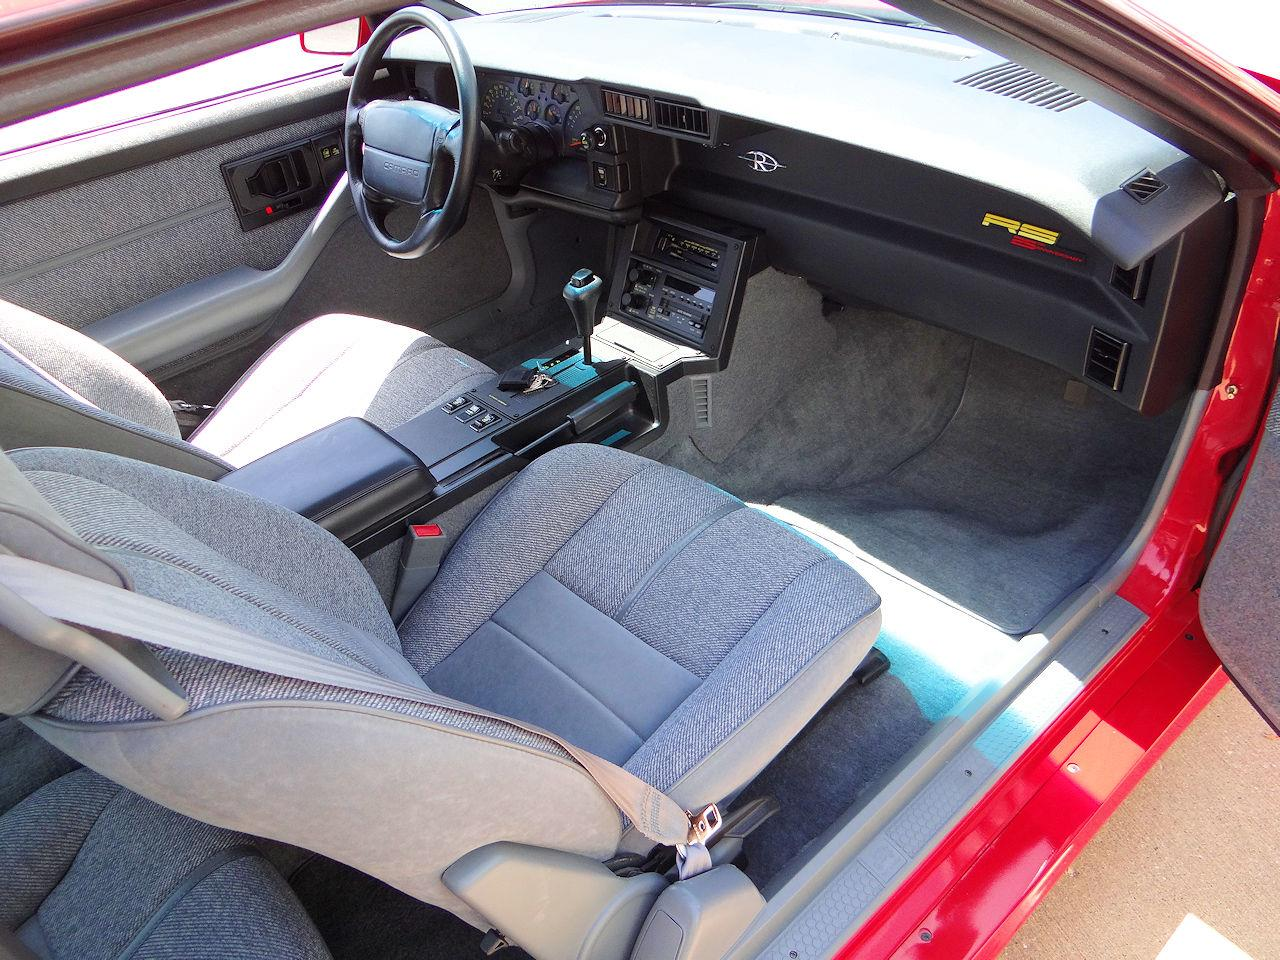 1992 Chevrolet Camaro (CC-1340824) for sale in O'Fallon, Illinois